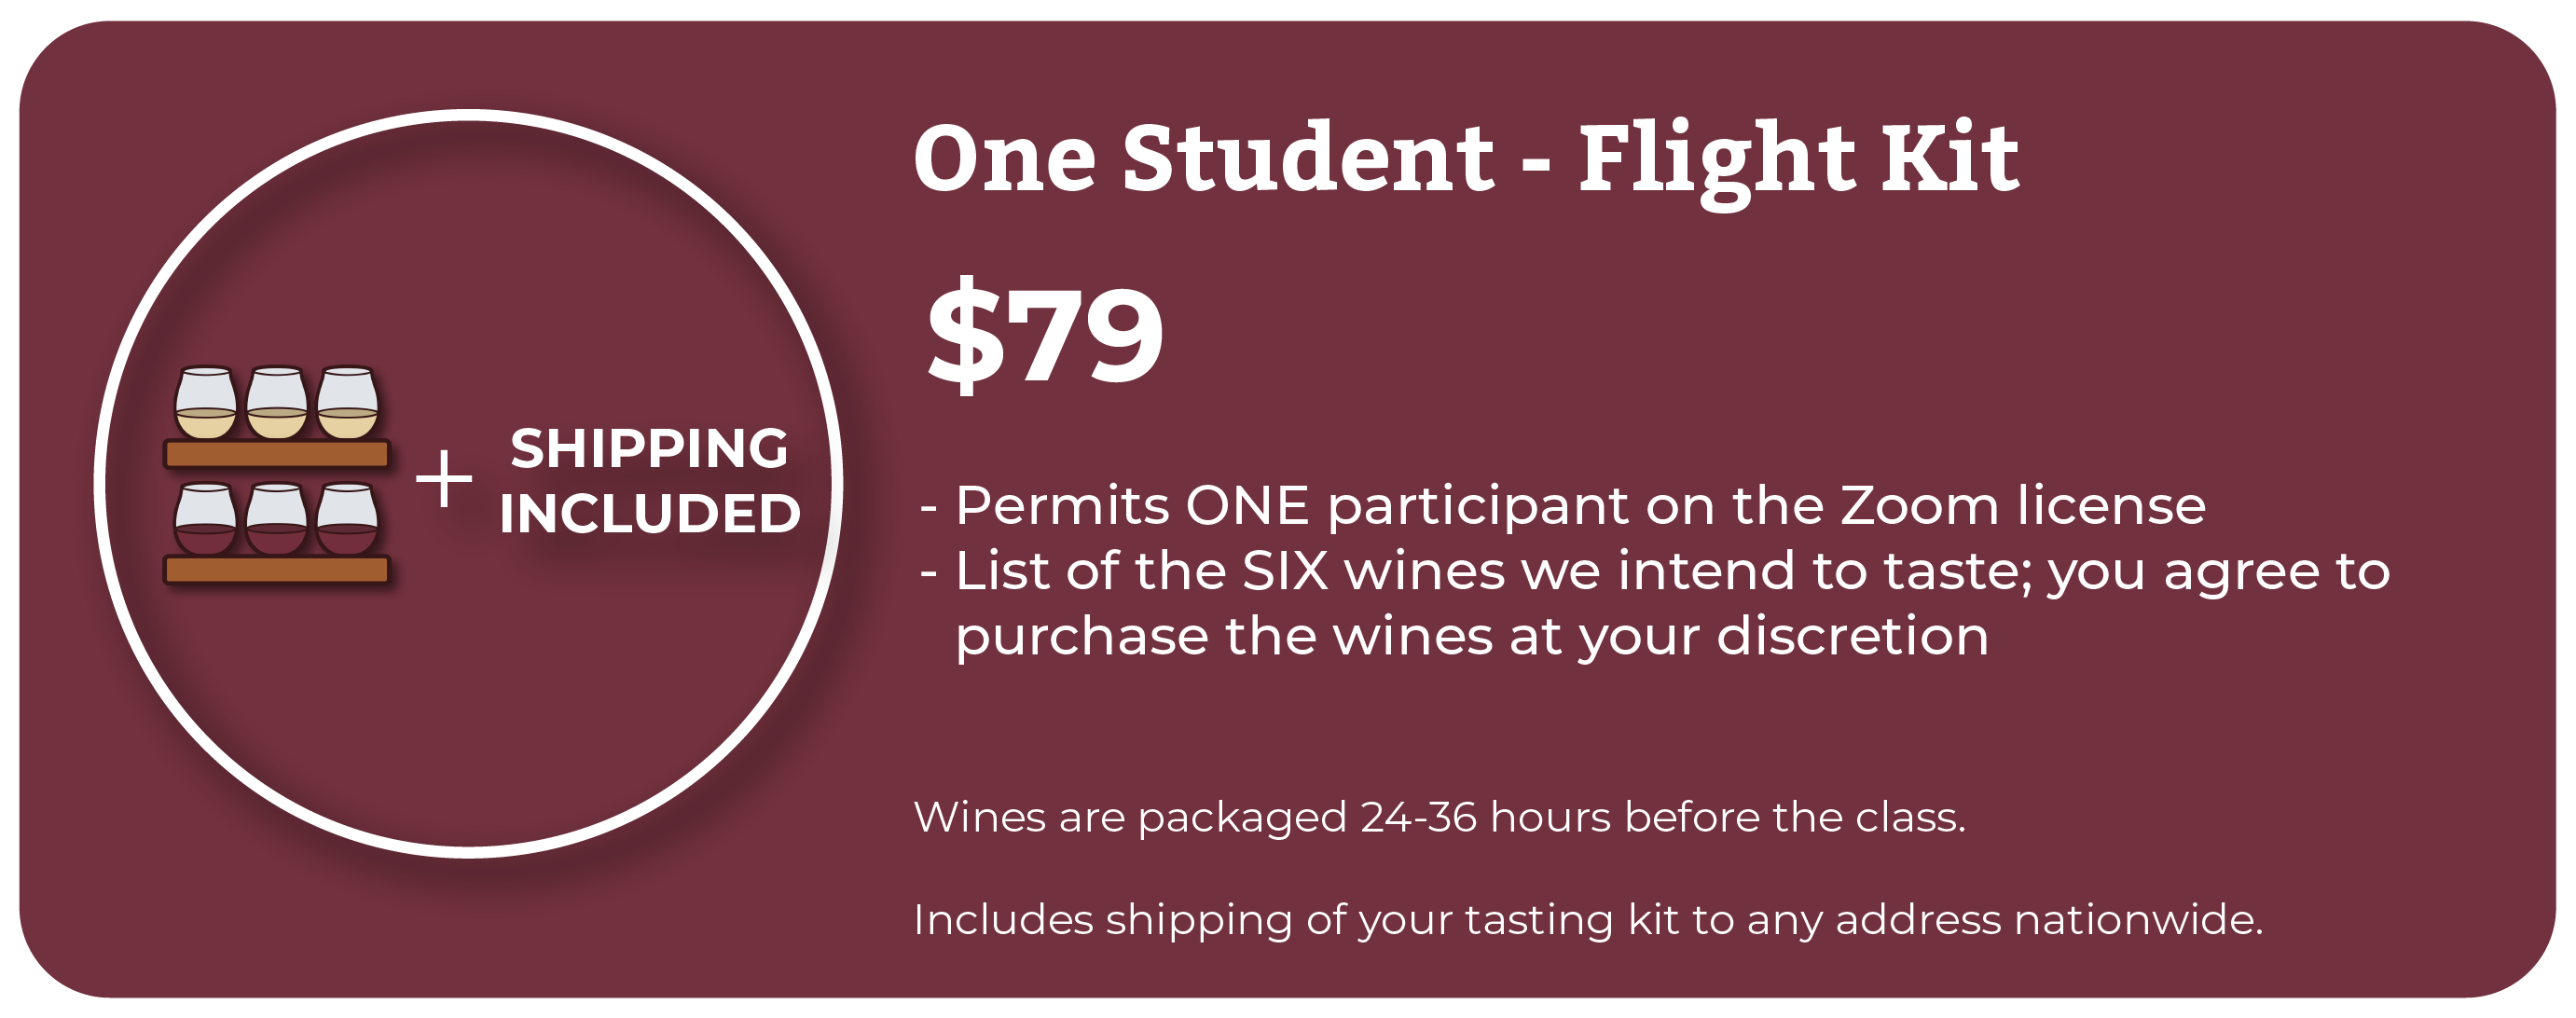 Flight Kit Wine Camp Prices  Online Wine Class Image atlearnaboutwine.com